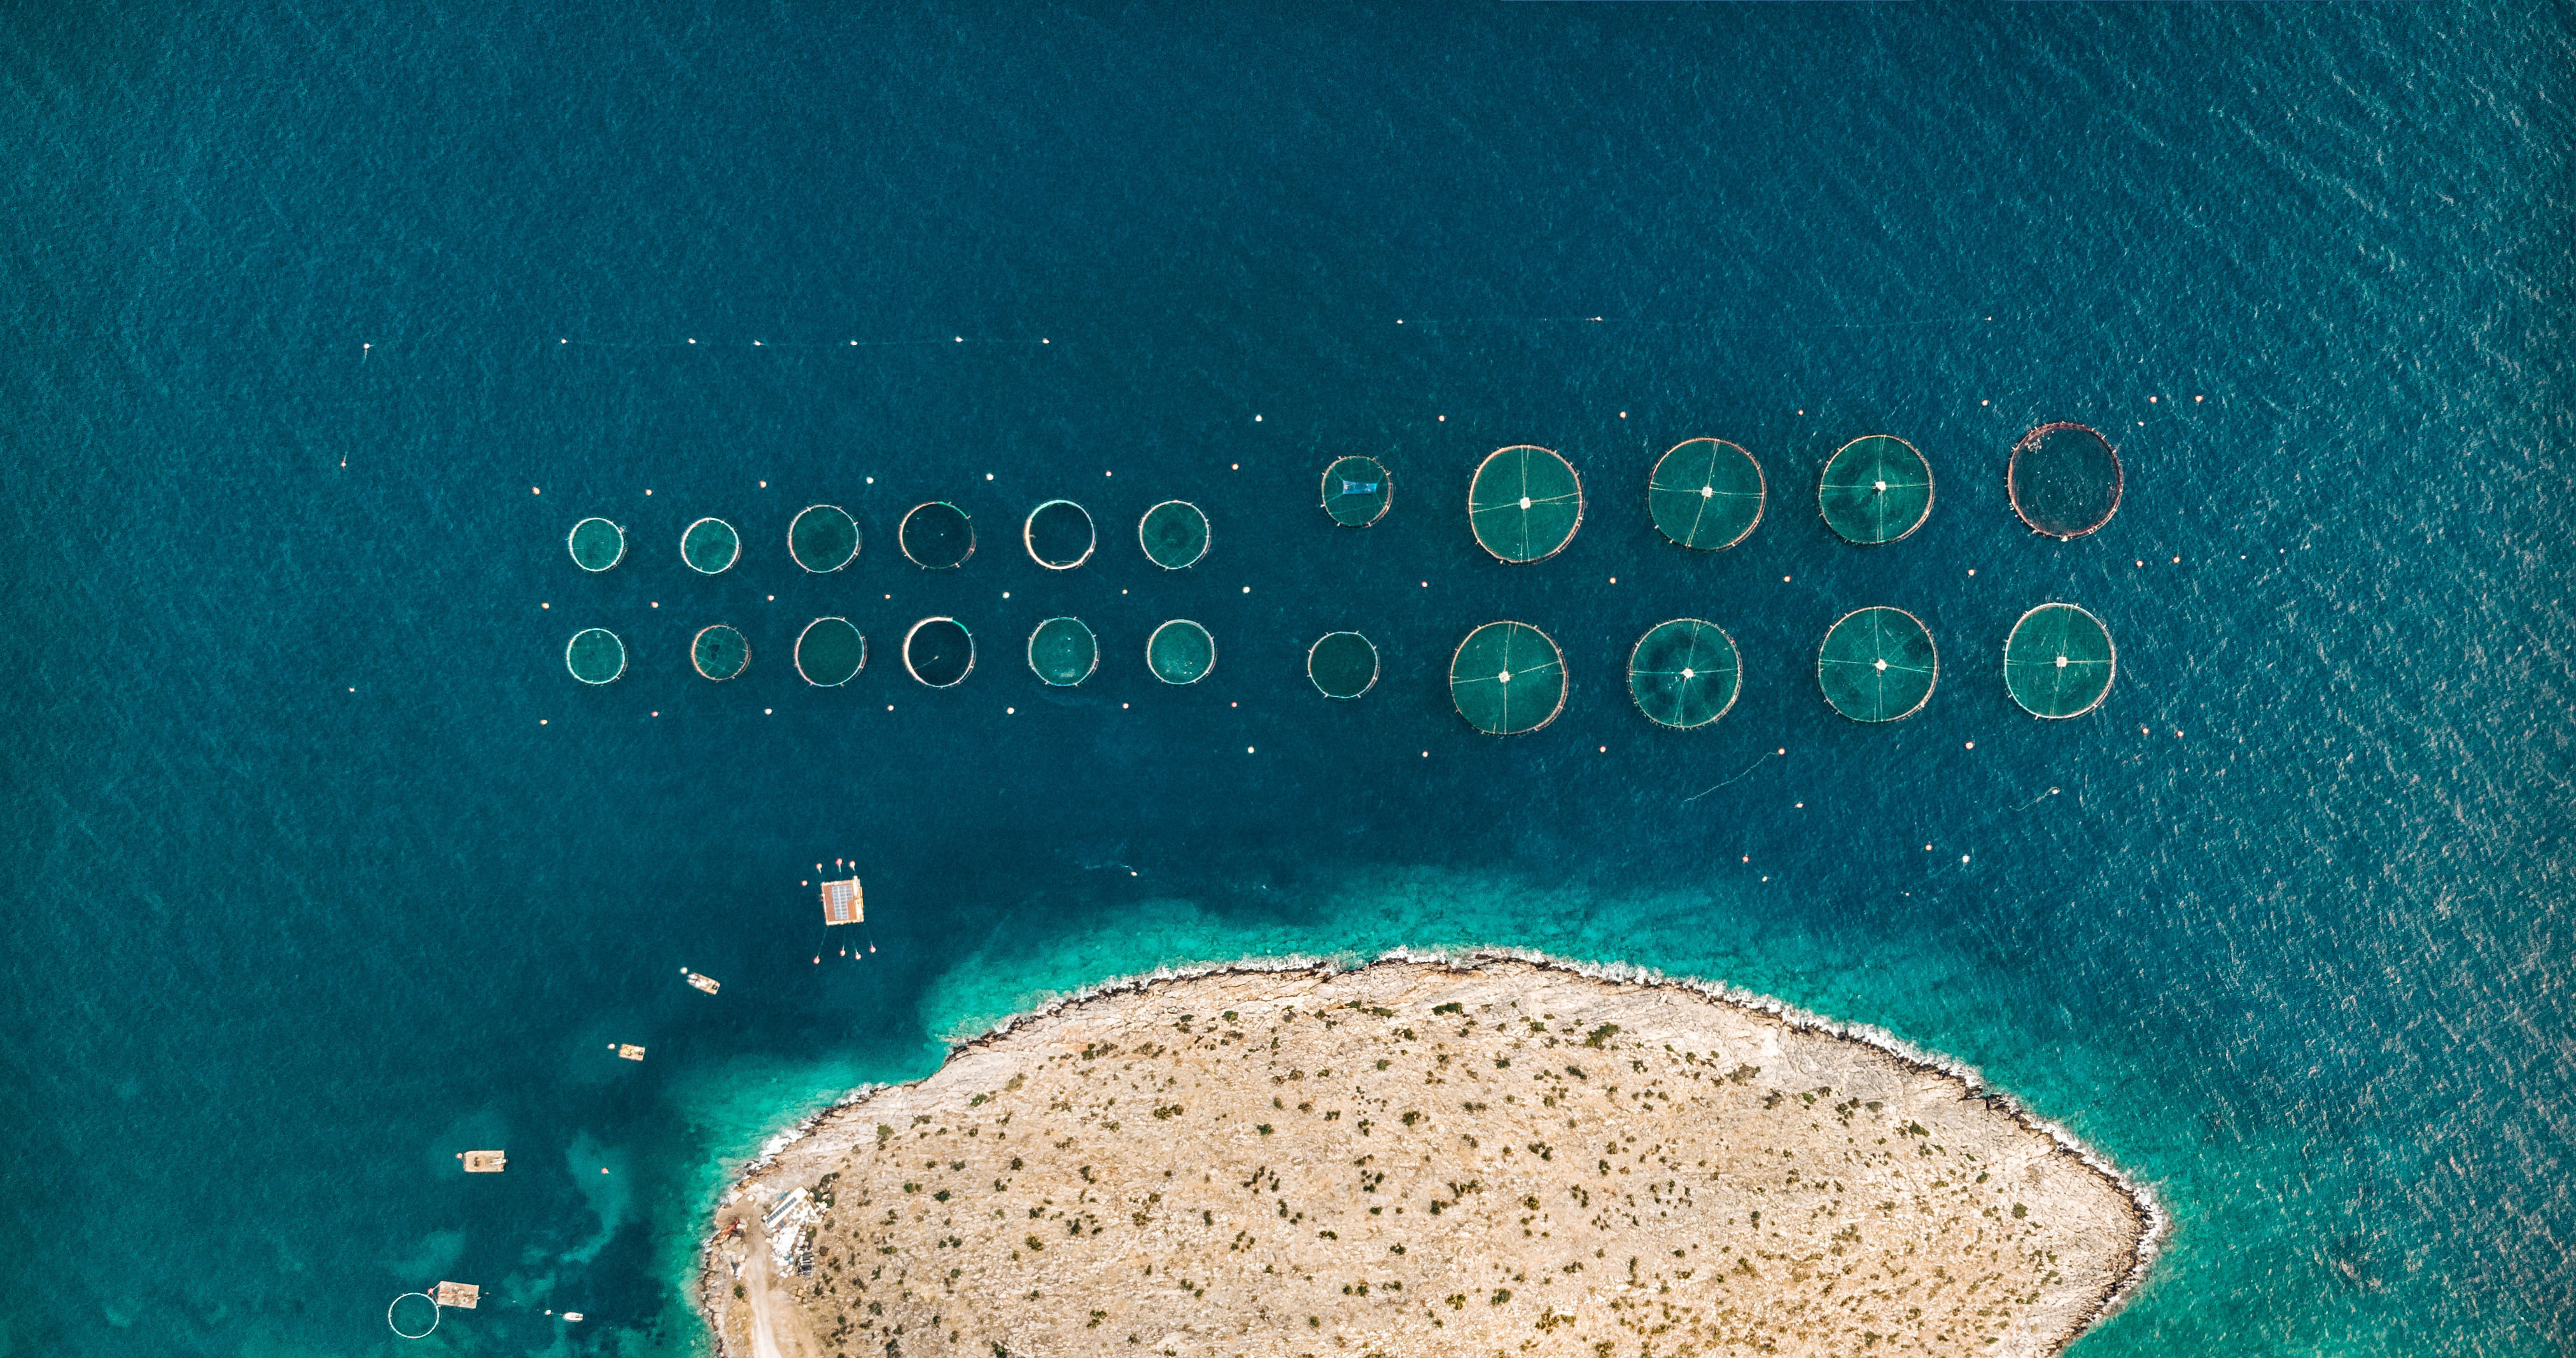 Done right, aquaculture can provide nutritional security to hundreds of millions